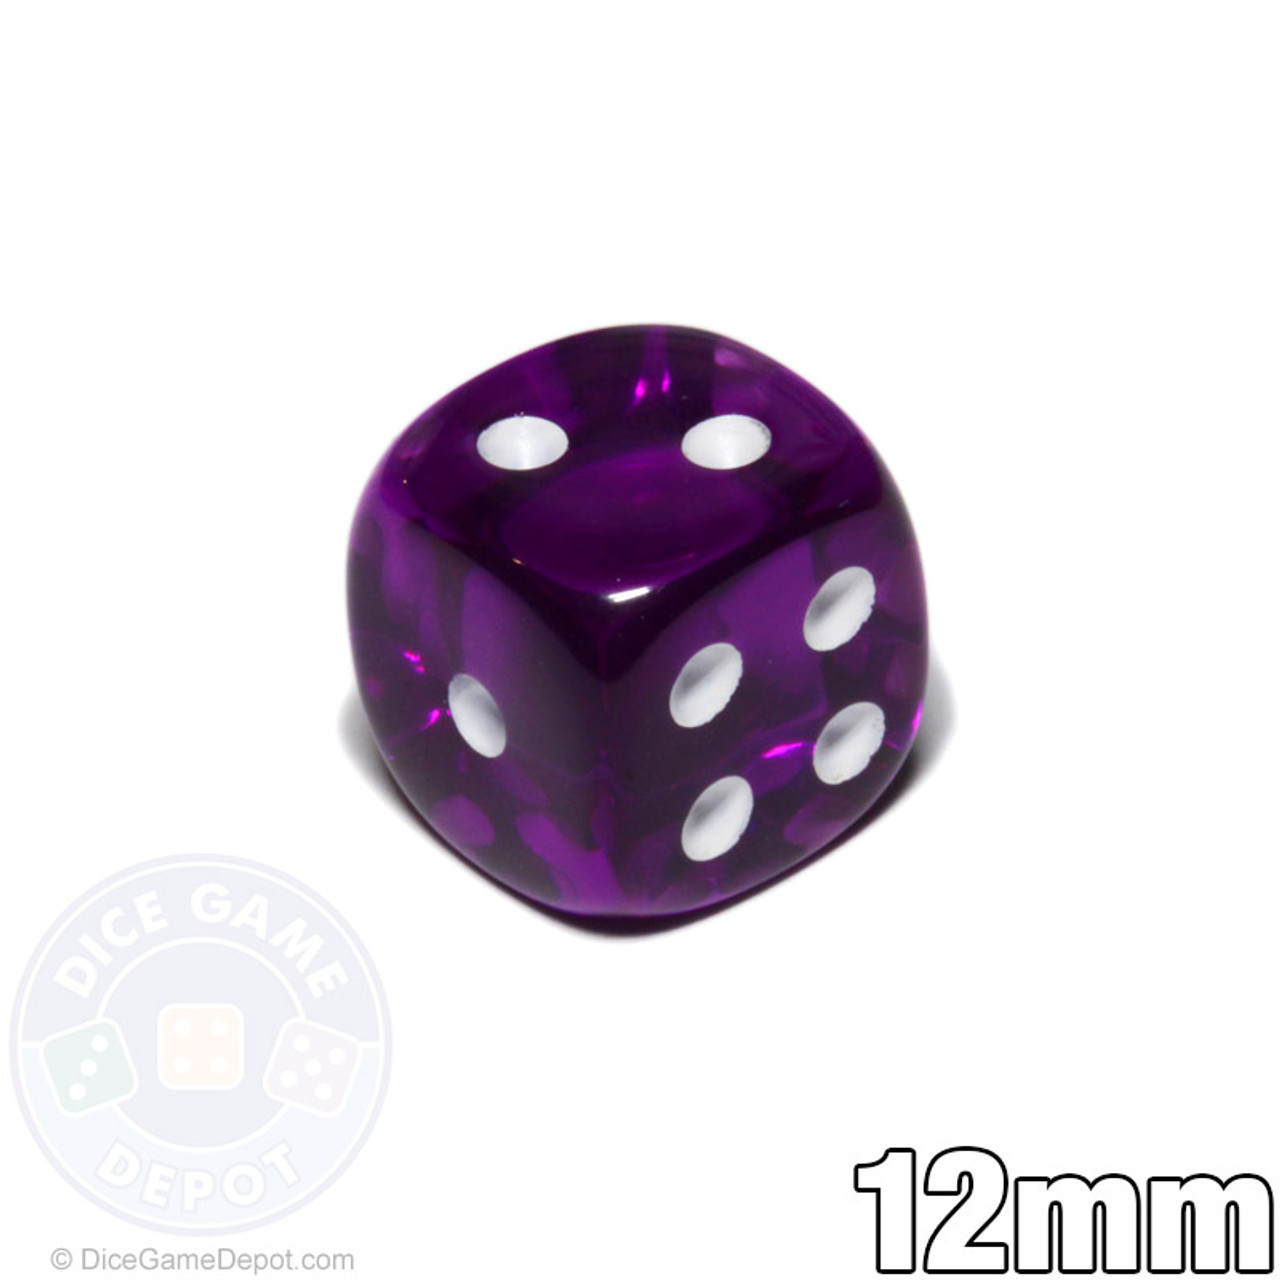 50 Six Sided Dice Set D6 14mm Standard Rounded Translucent Games Die Green Red